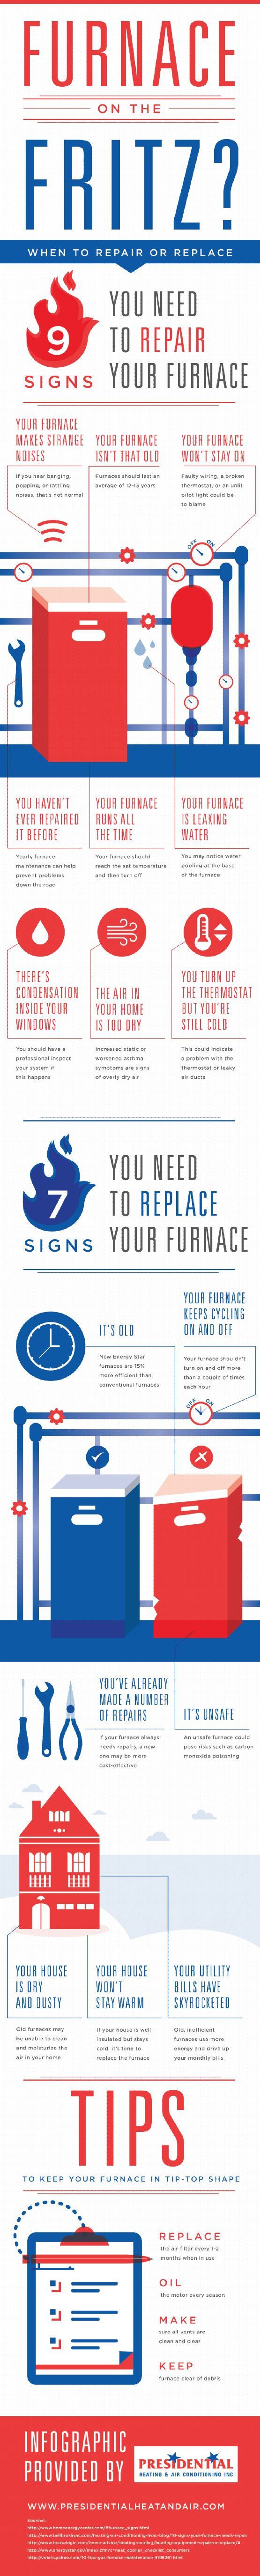 Did you know that new Energy Star furnaces are 15% more efficient than conventional furnaces? Discover more interesting facts and see if it is time to get a new furnace by taking a look at this infographic from a furnace maintenance company in Gaithersburg.